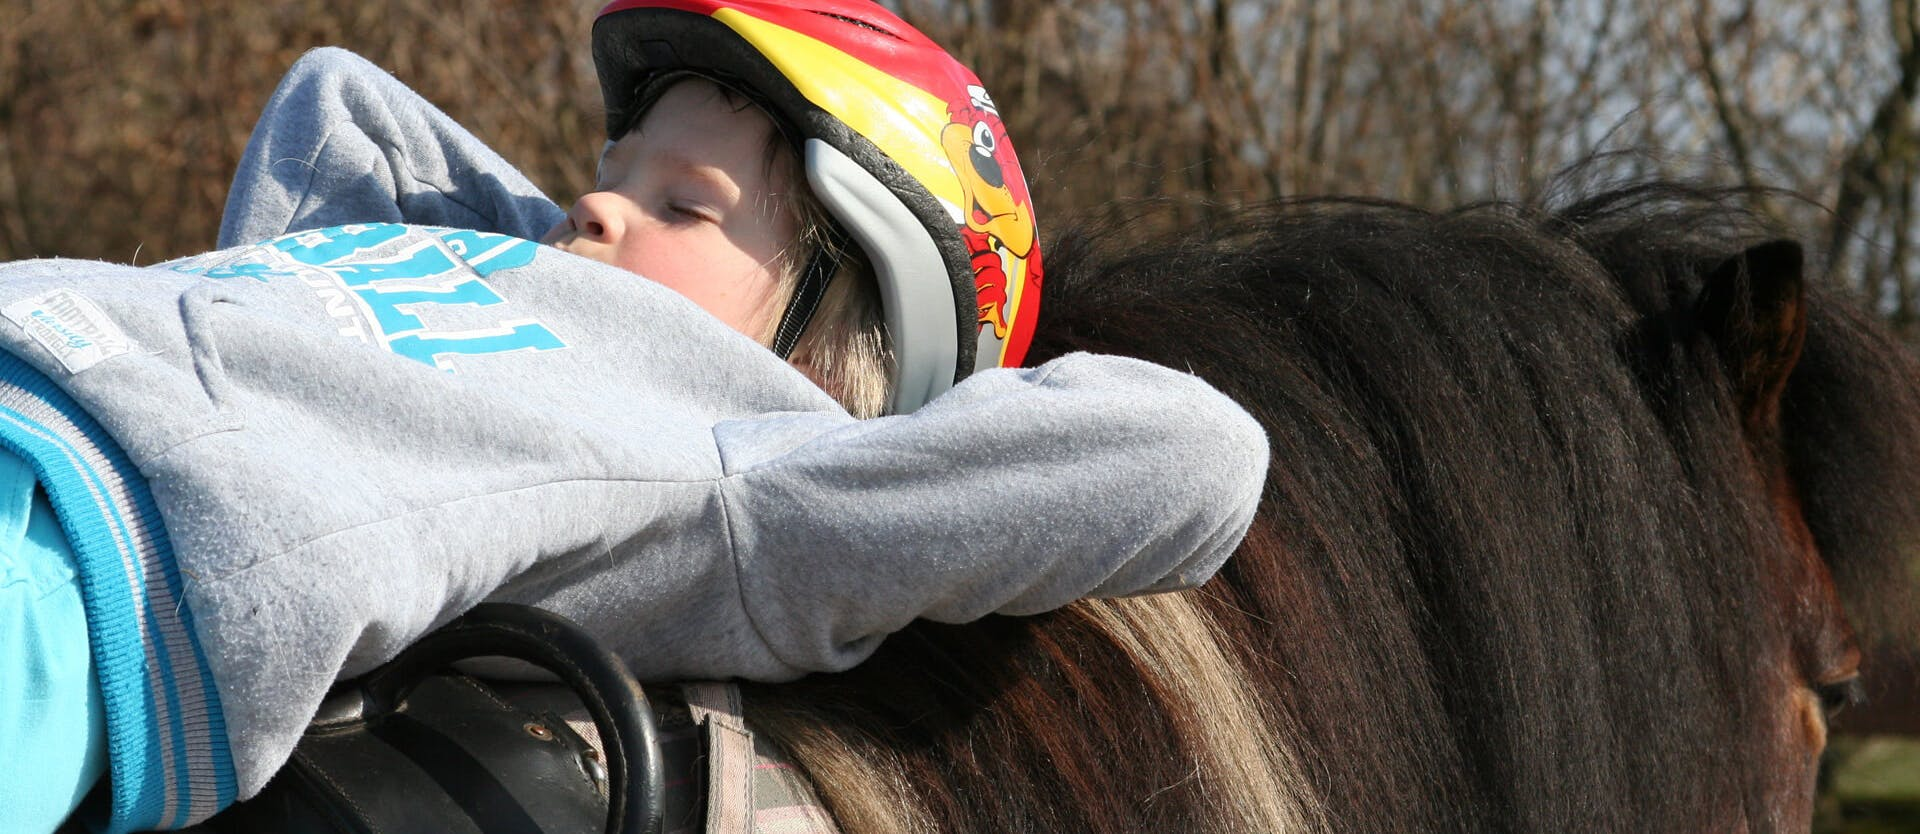 Stichting Kind te Paard